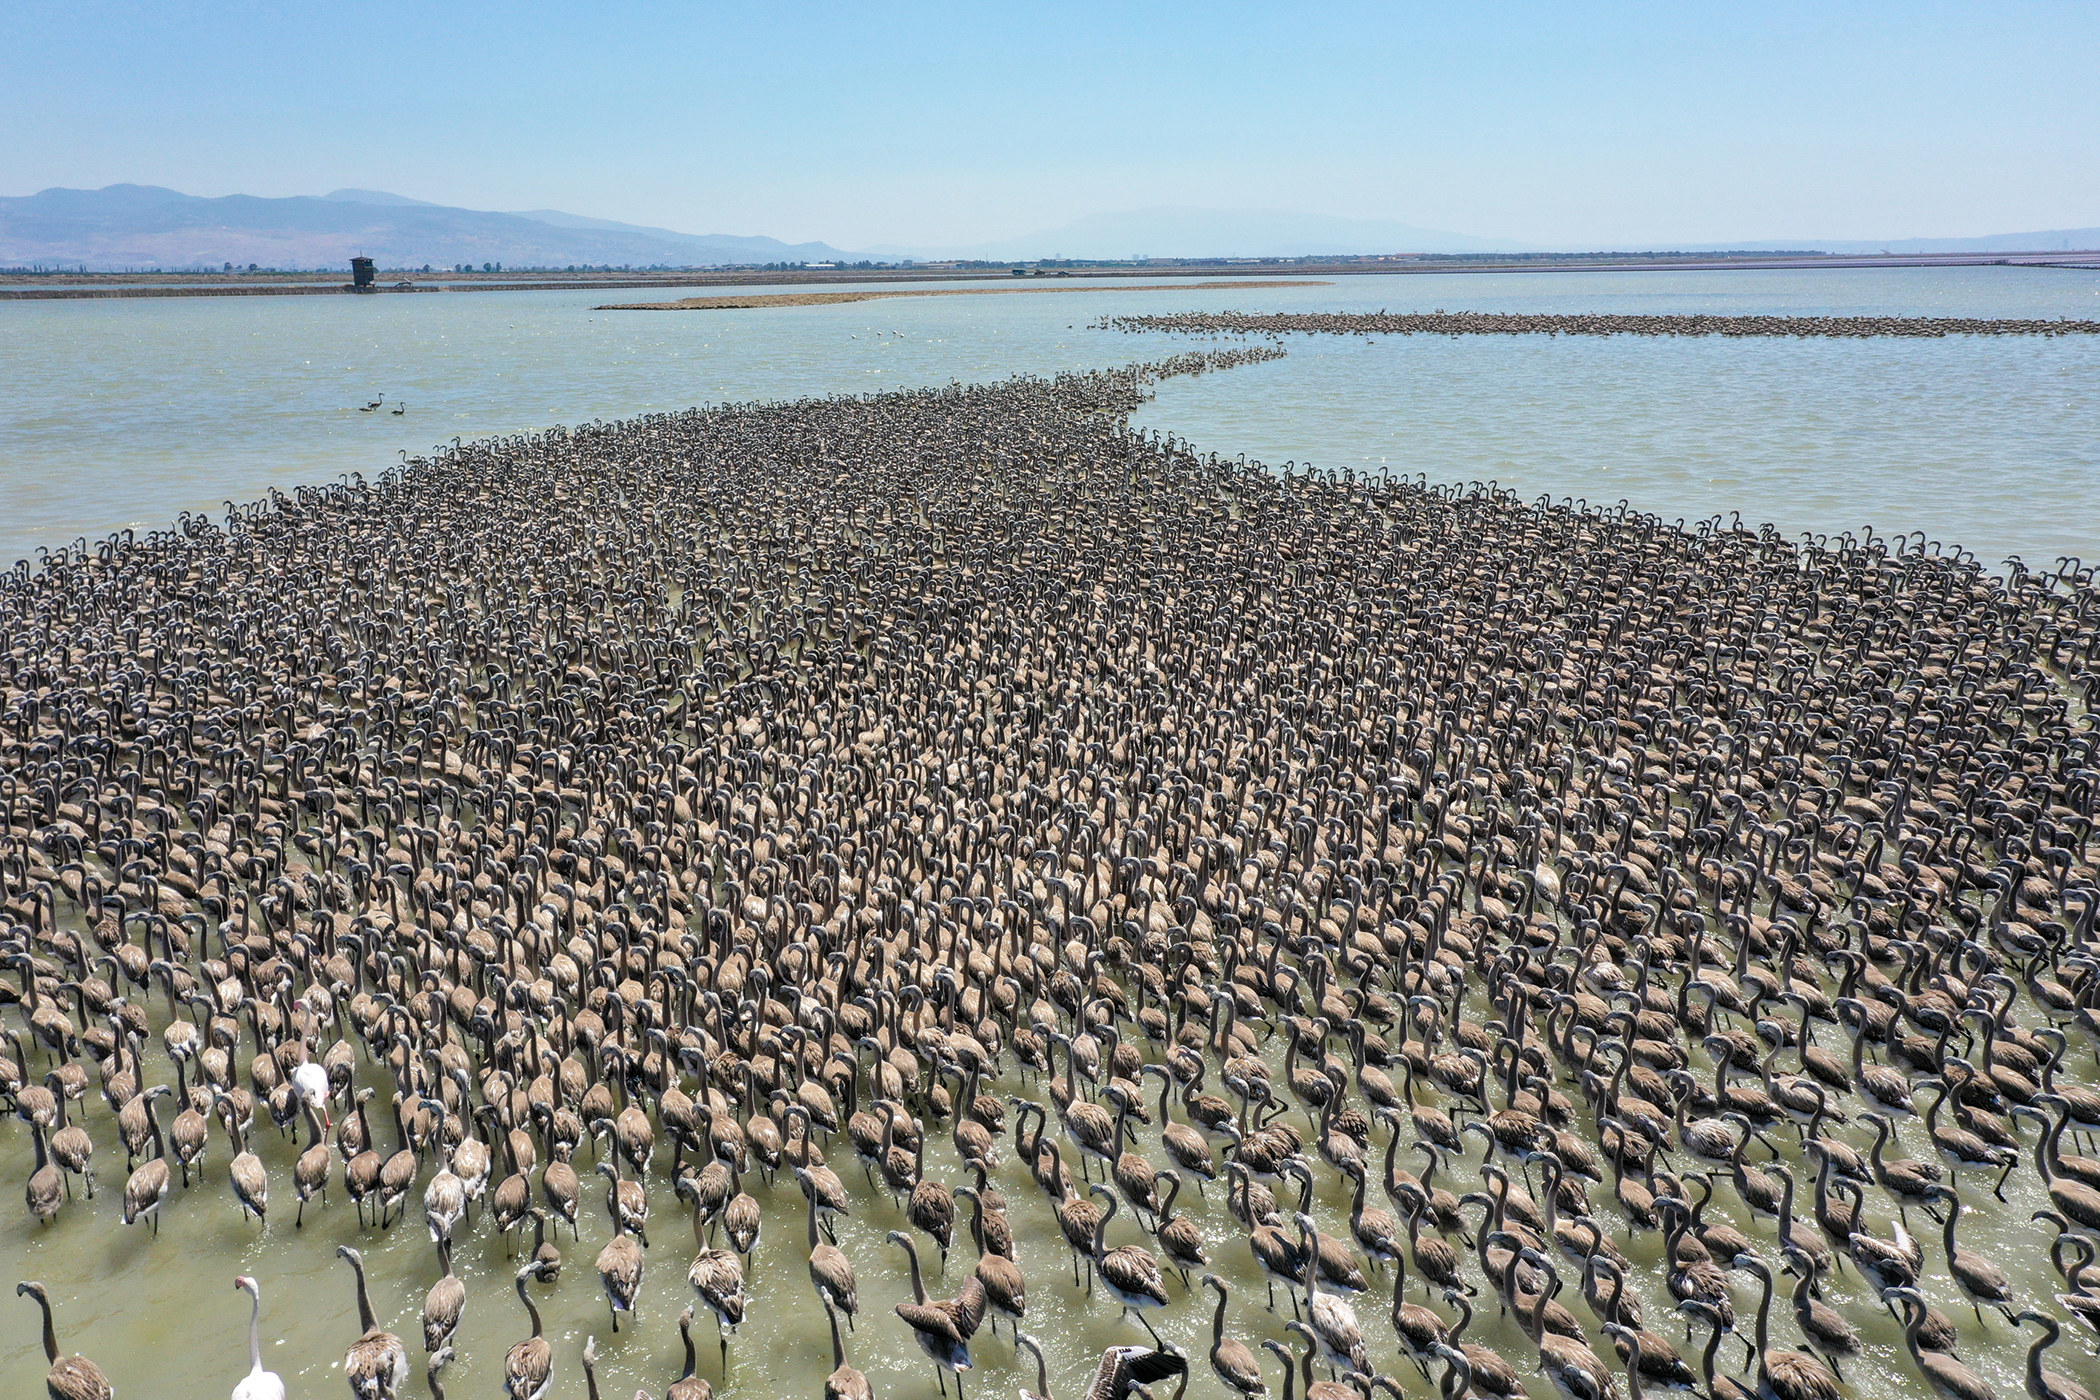 An aerial photo shows thousands of baby flamingos in a body of water